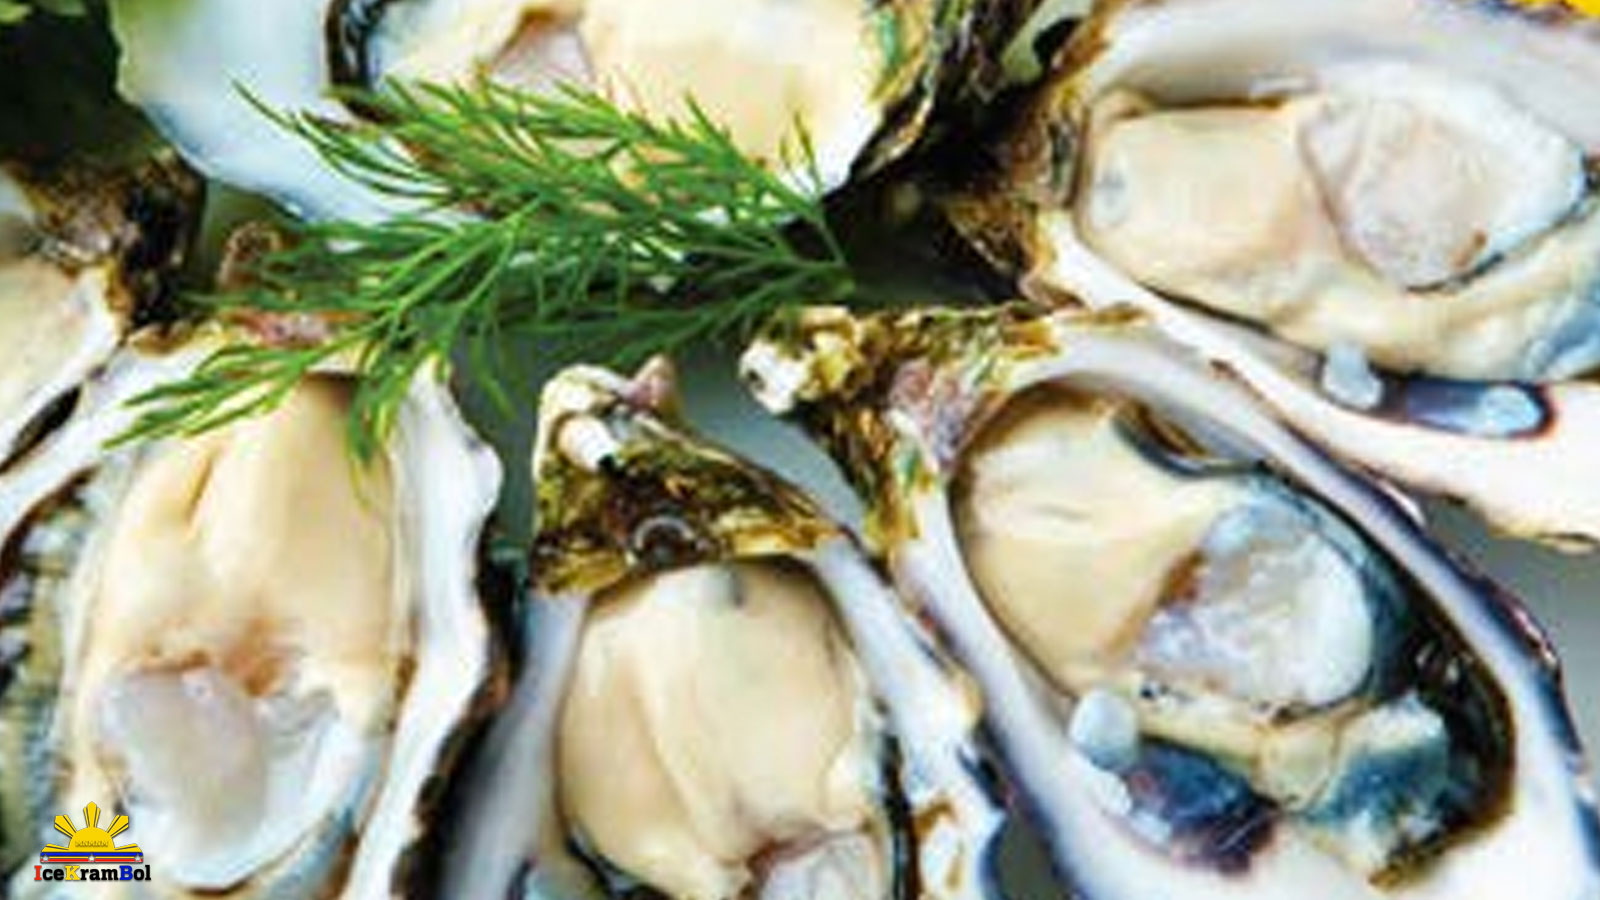 Sisi (Small Oysters)